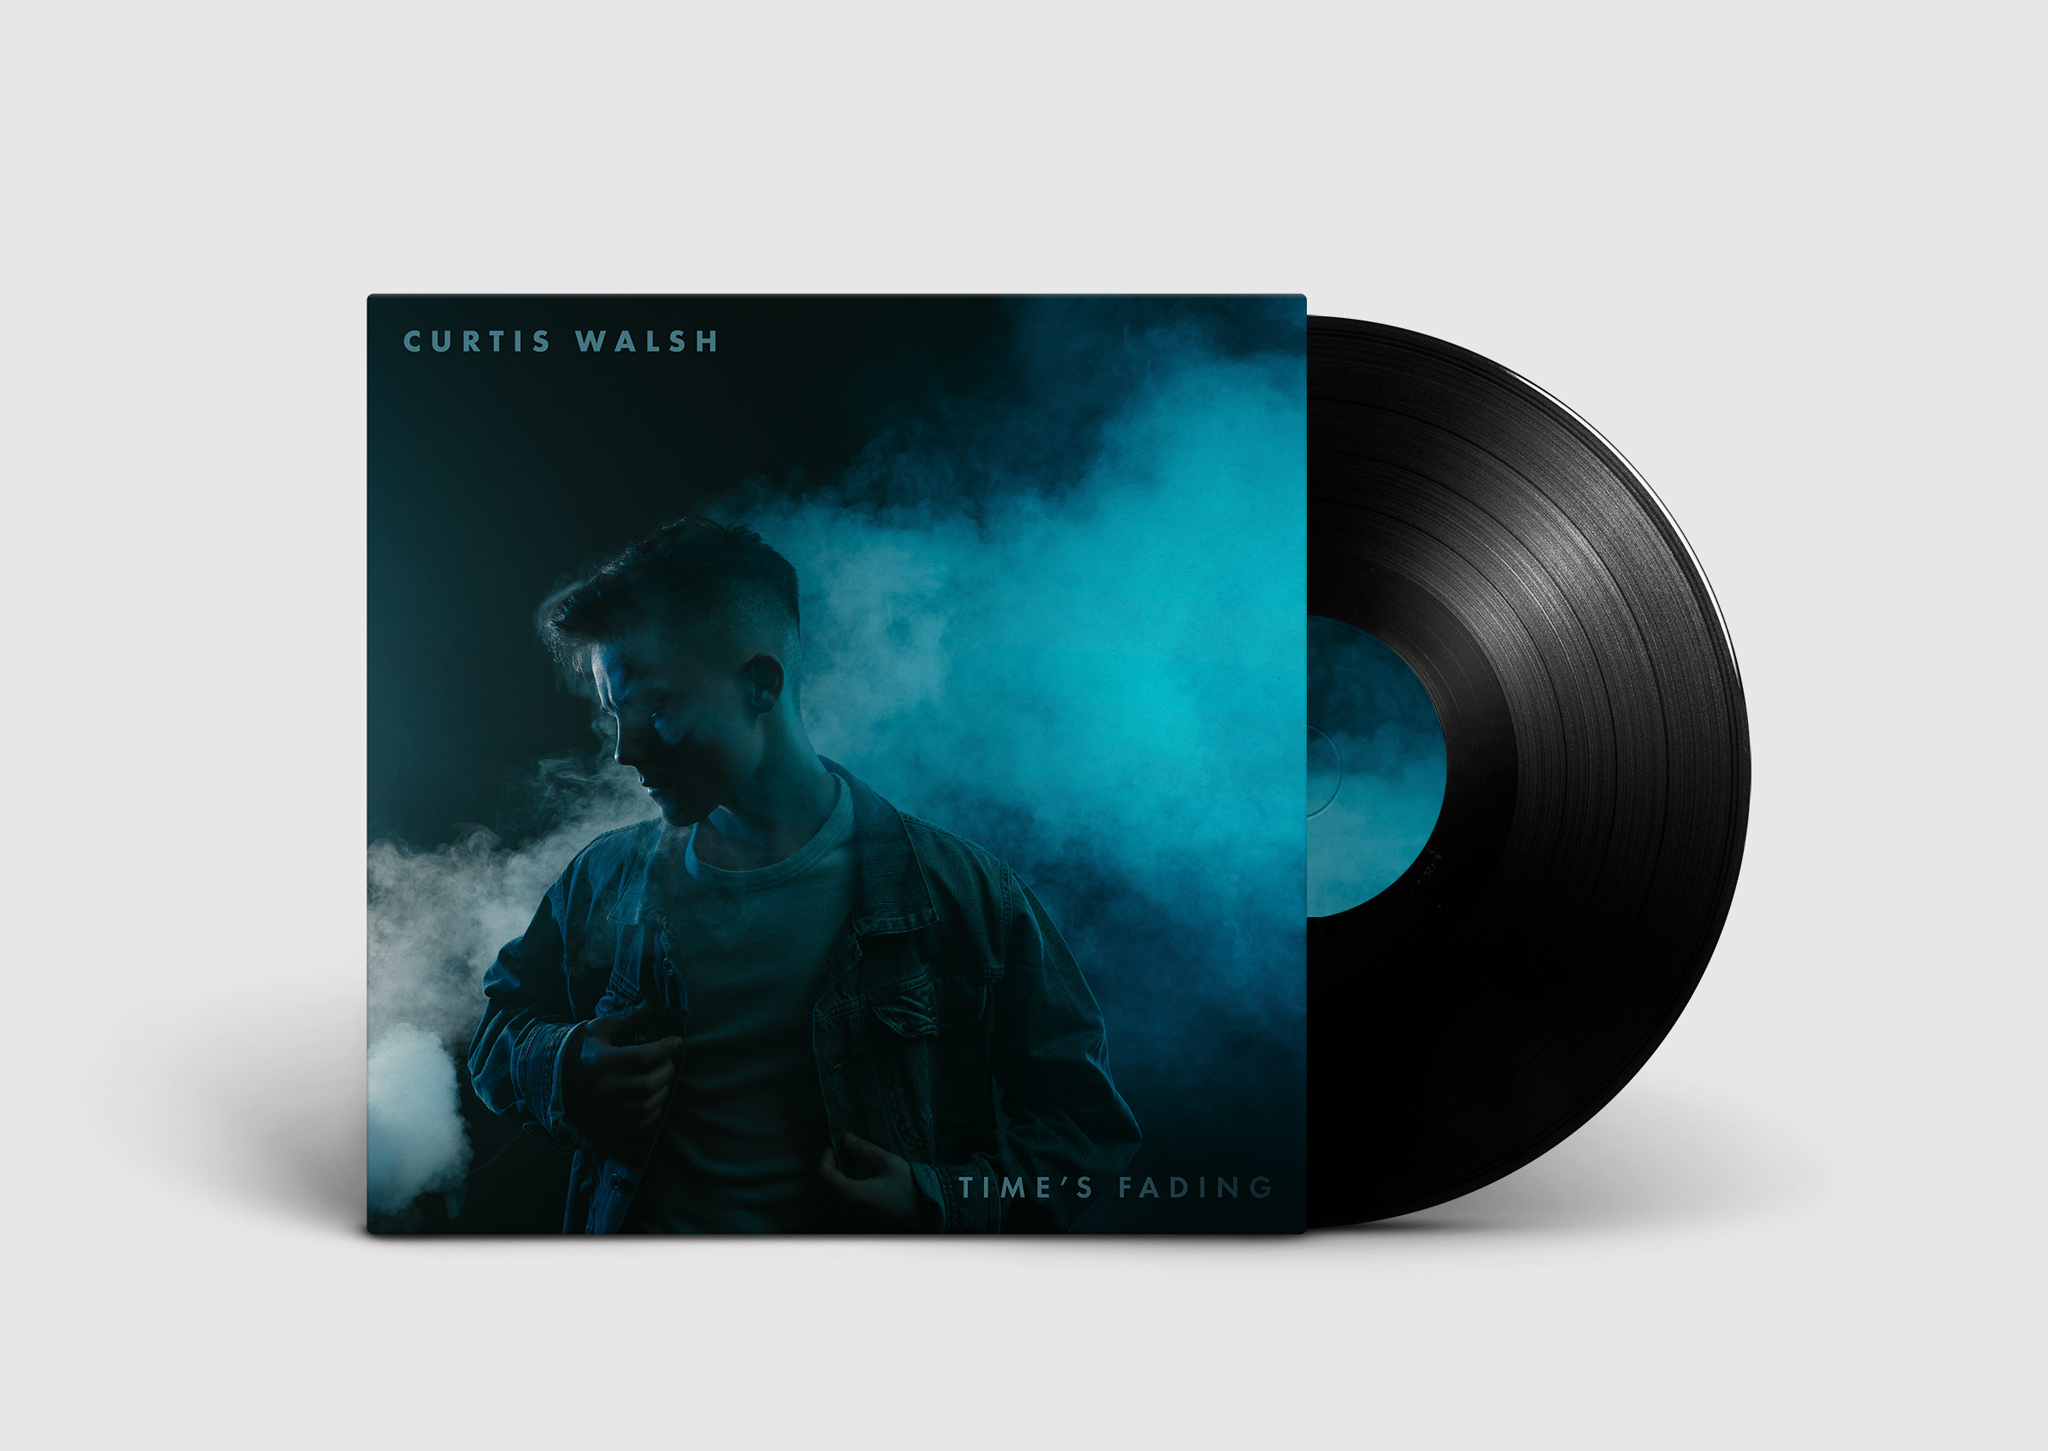 curtis-walsh-times-fading-lp-sleeve